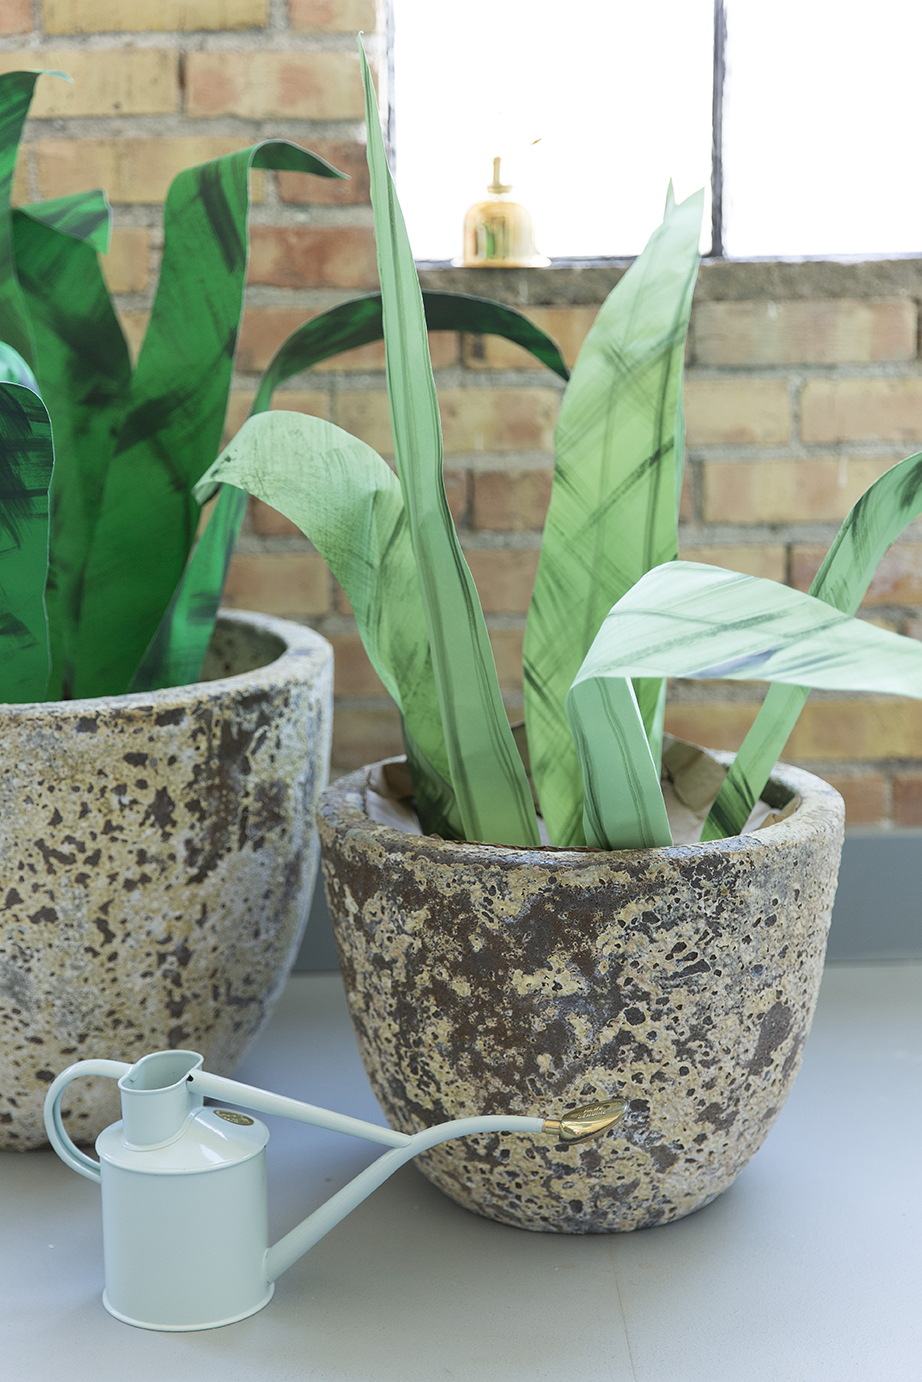 Paper potted plants